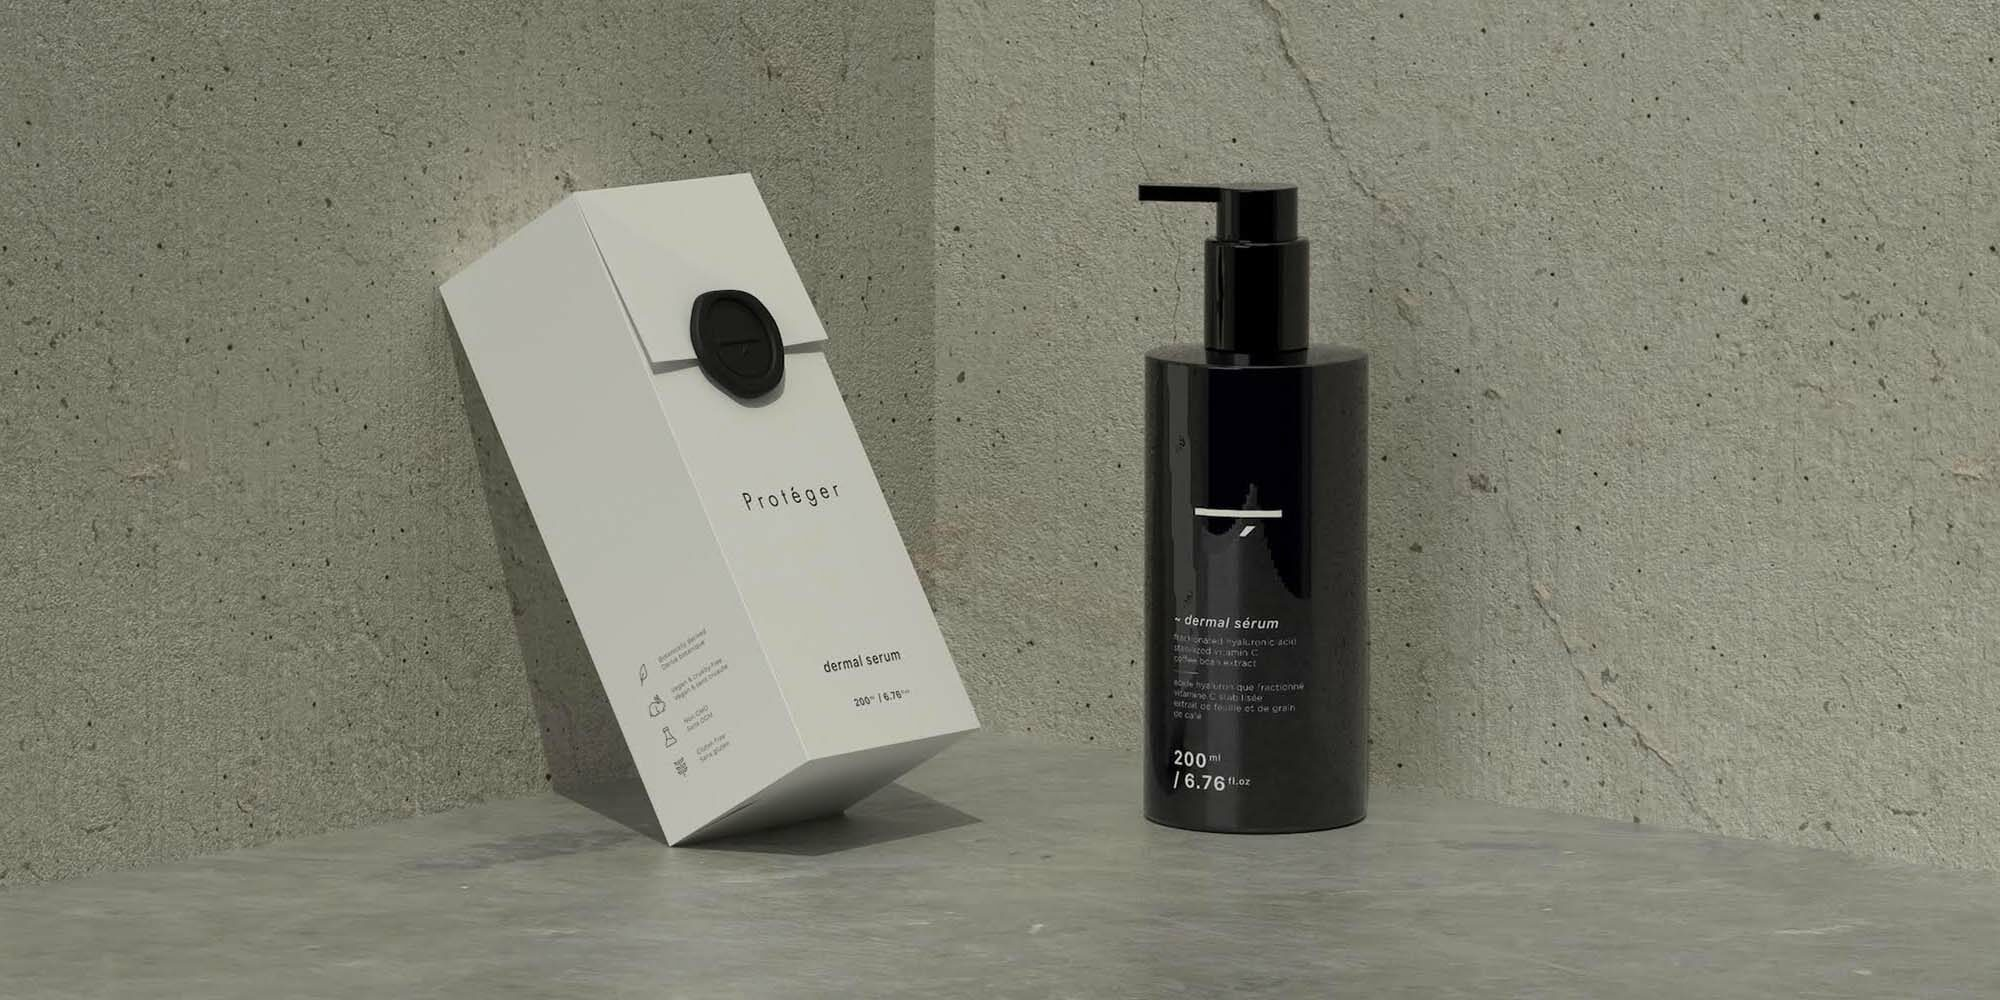 These Five New Beauty And Sexual Wellness Brands Are Here For Consumers' Post-Pandemic Needs